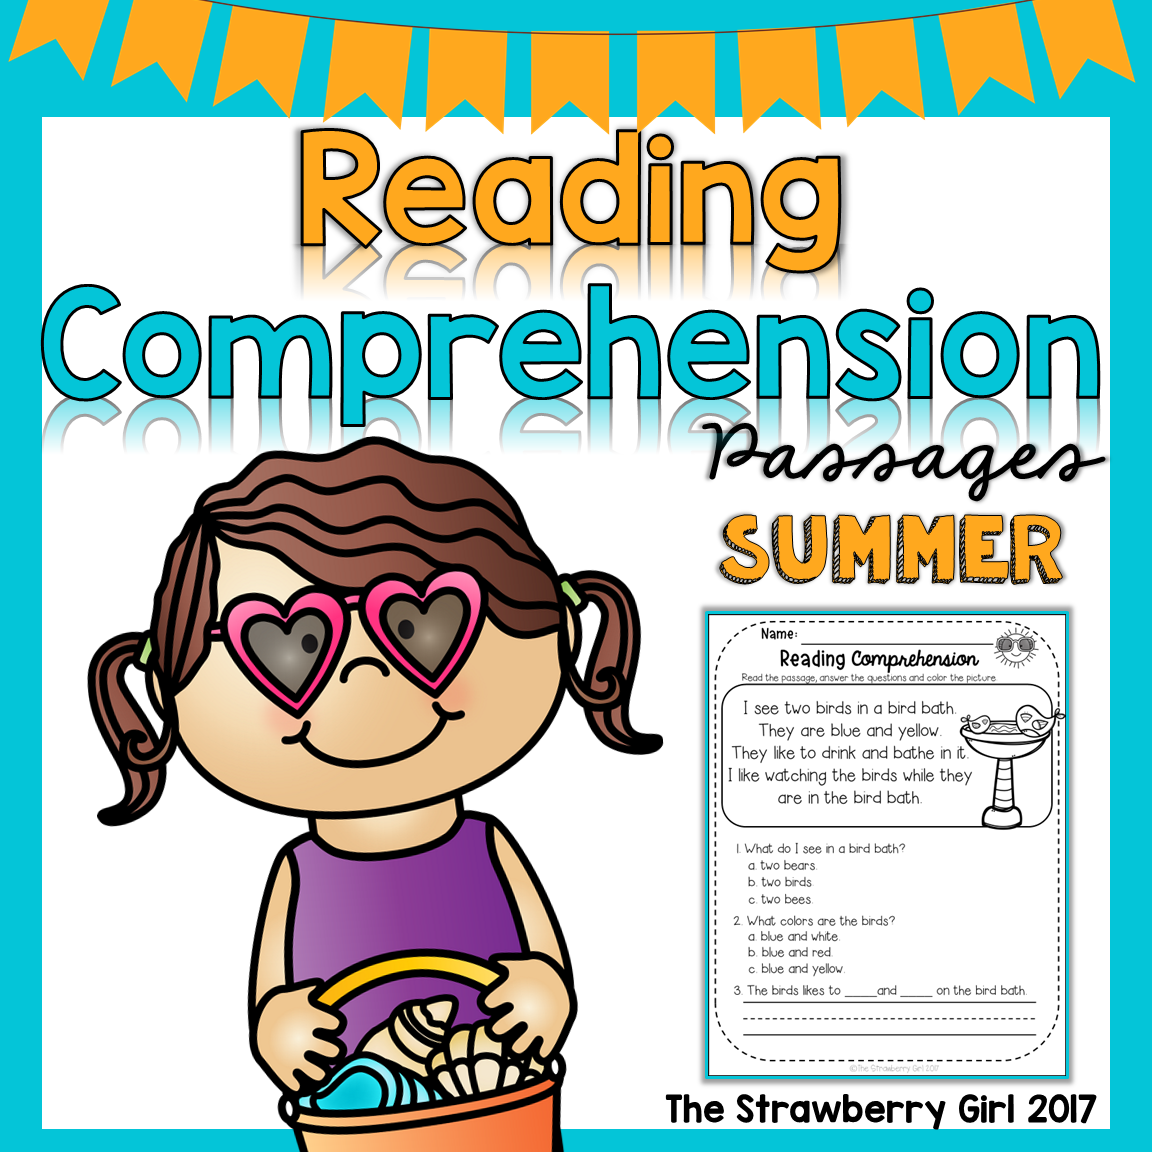 Reading Comprehension Passages These Reading Comprehension Passages All Have A Summ Reading Comprehension Passages Reading Comprehension Comprehension Passage [ 1152 x 1152 Pixel ]